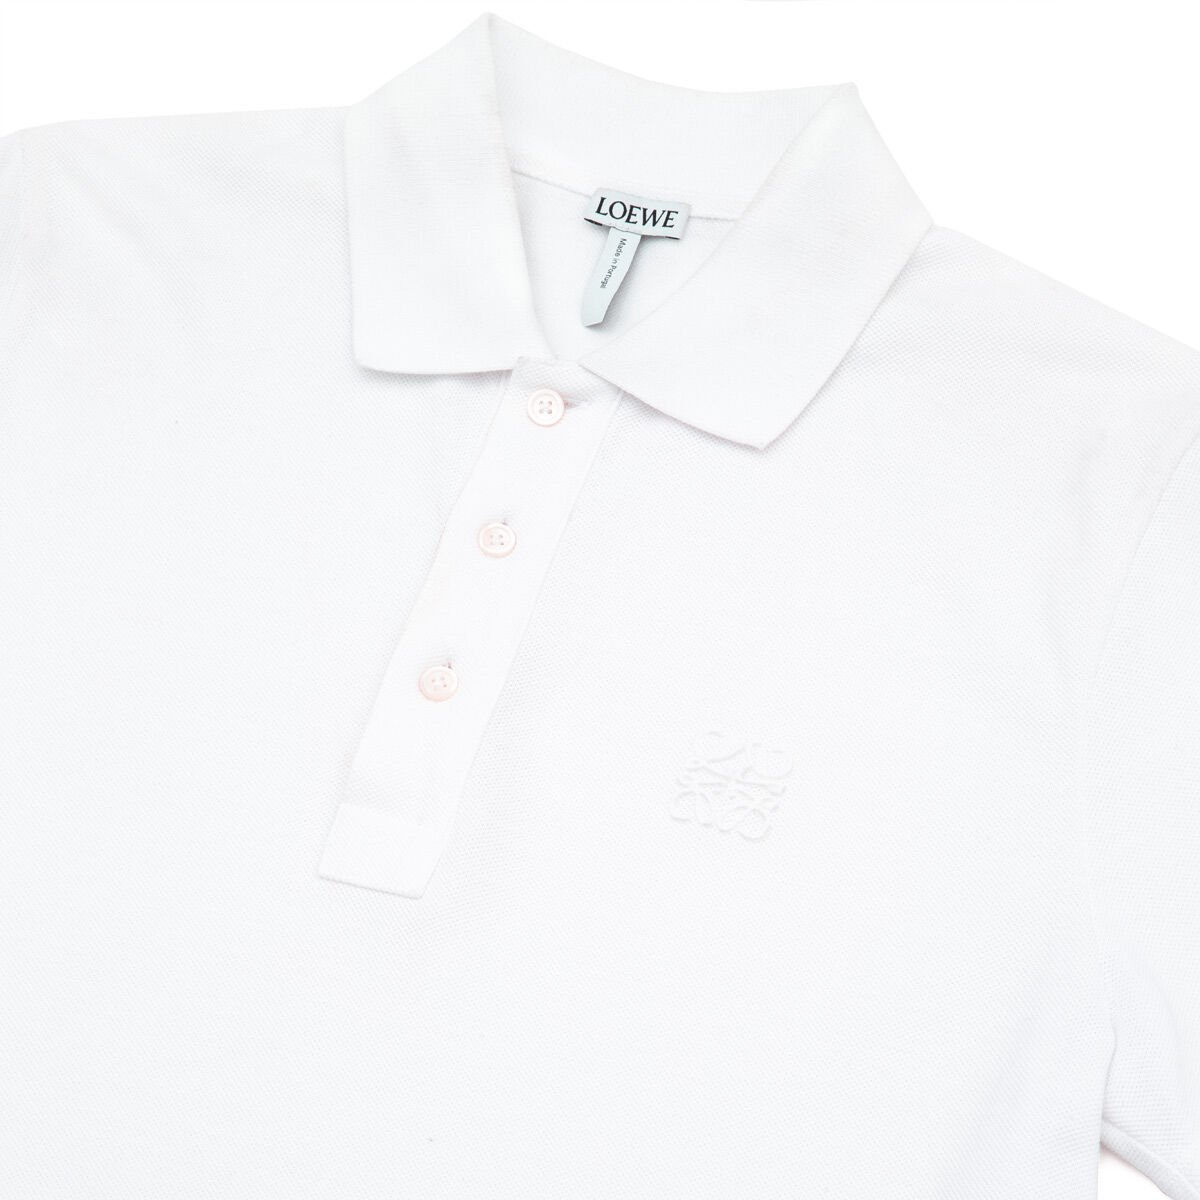 LOEWE Anagram Polo White Ash all